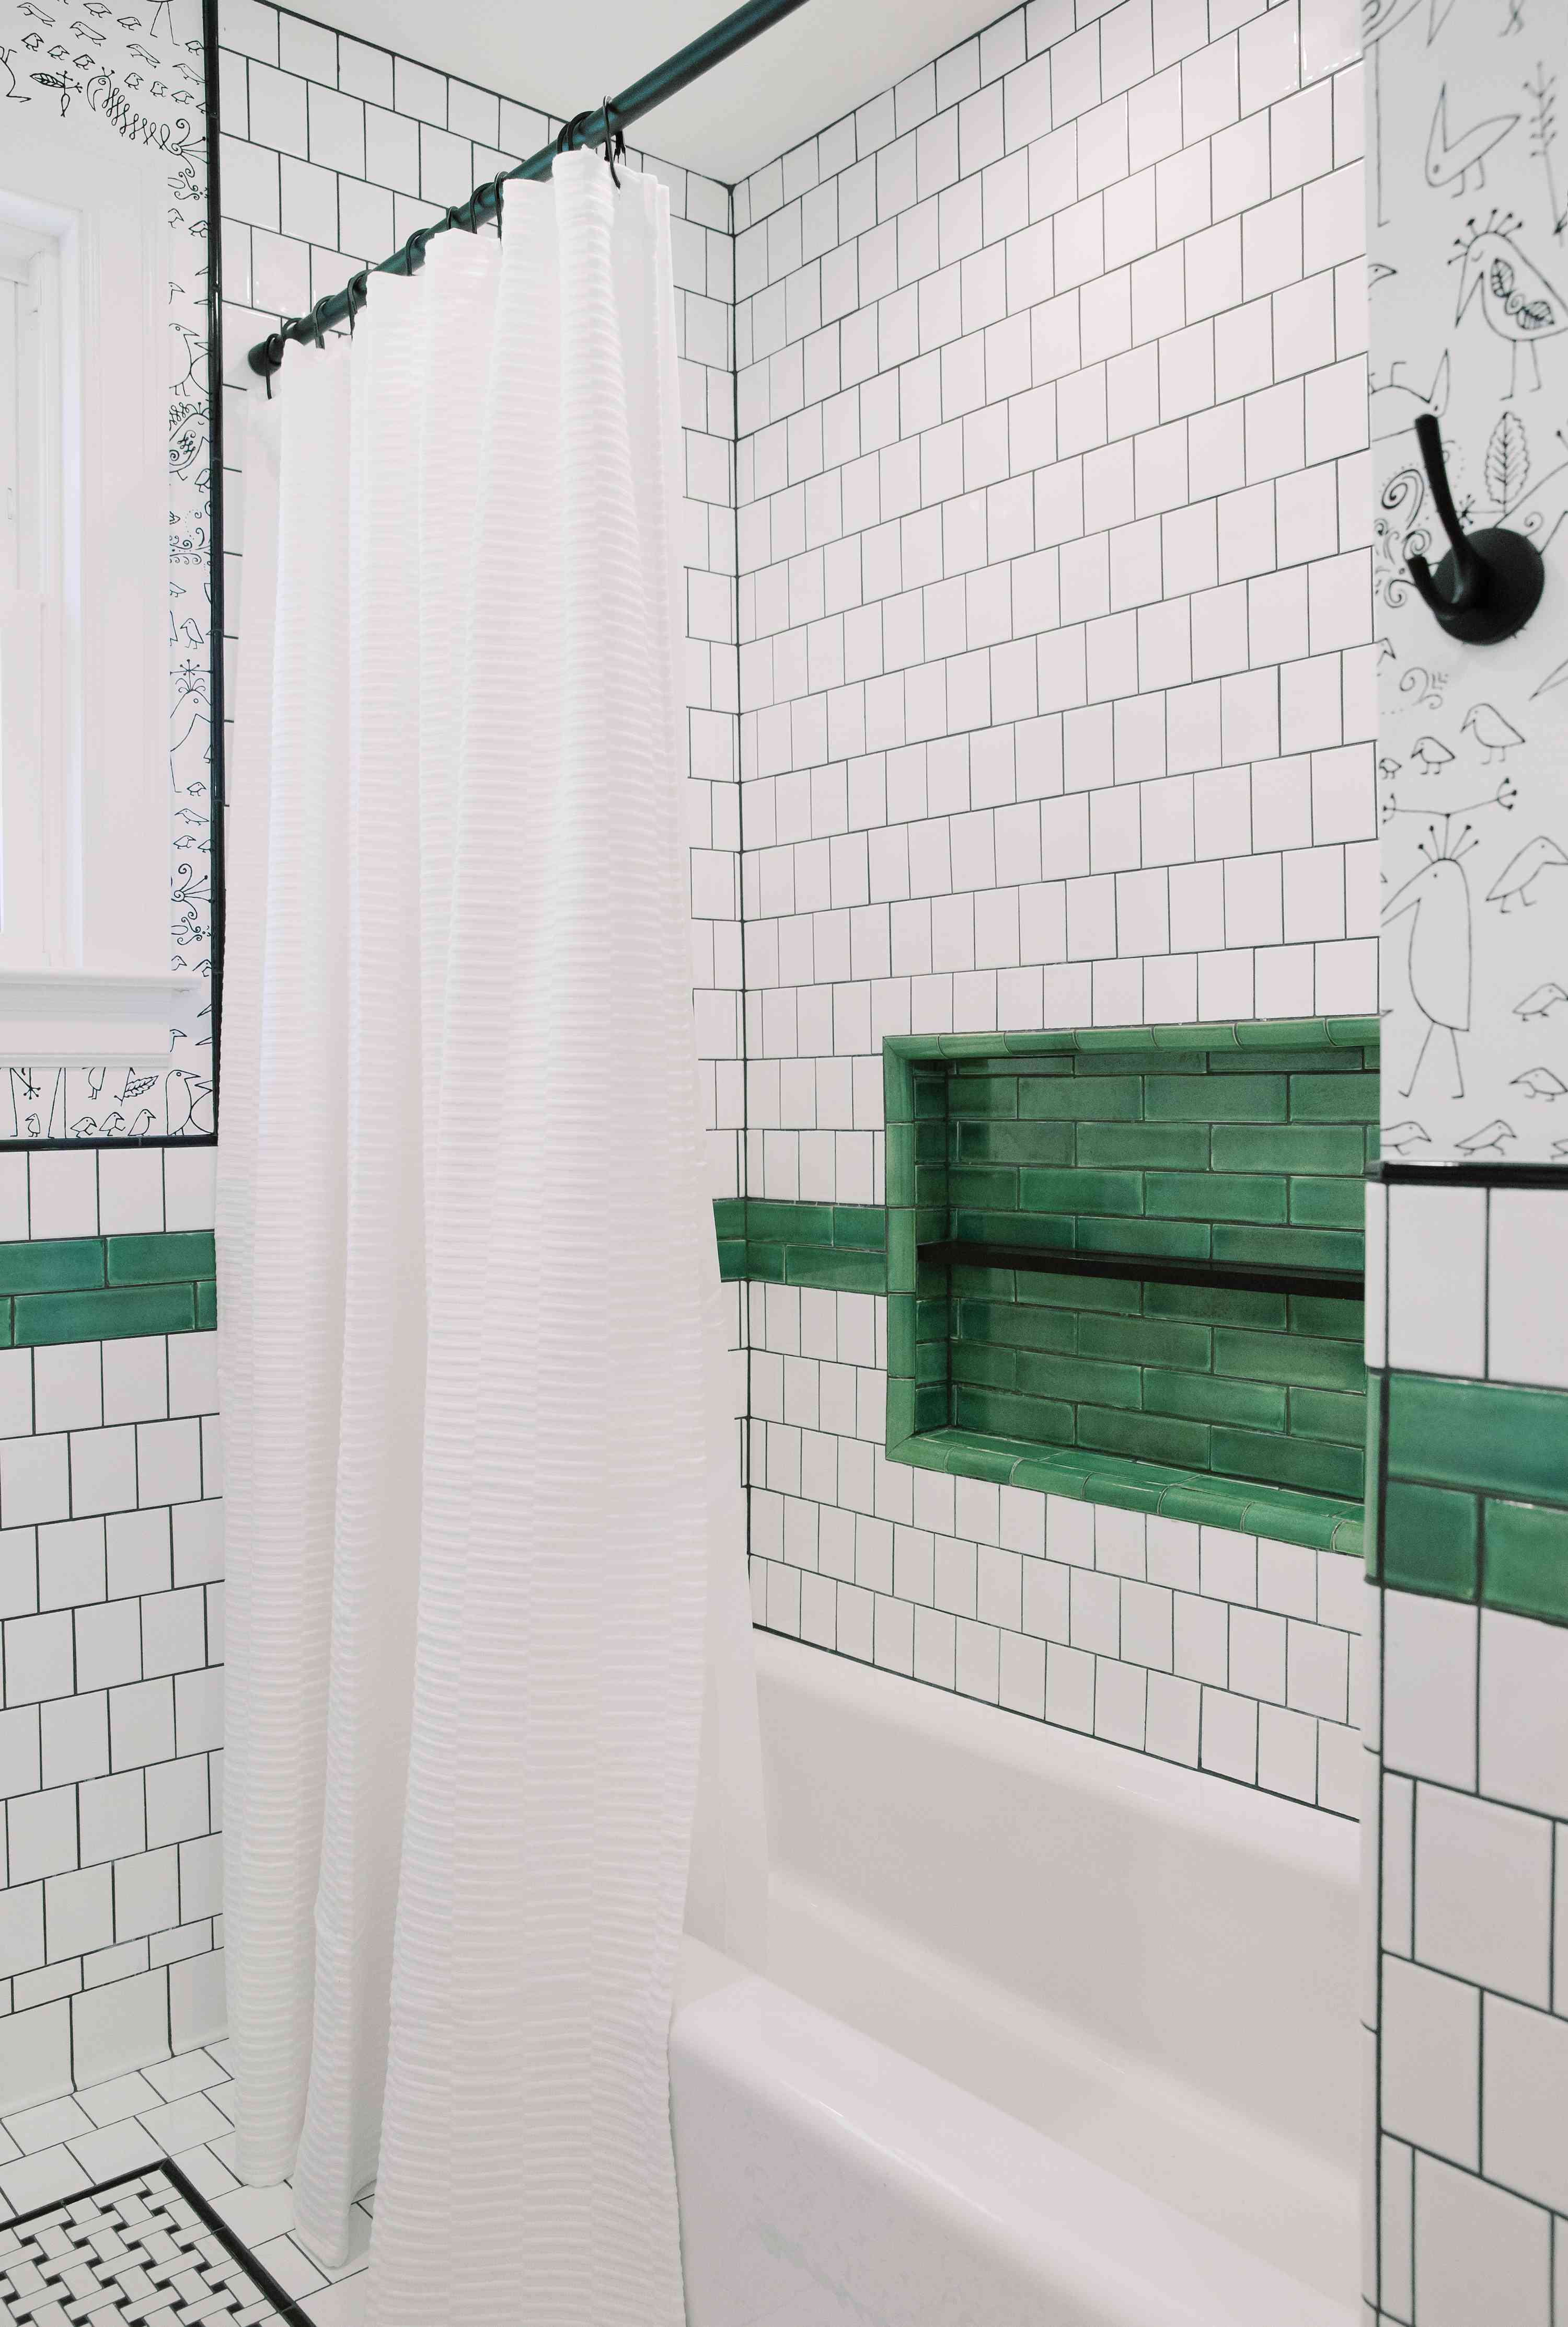 Green tile cutout in shower.